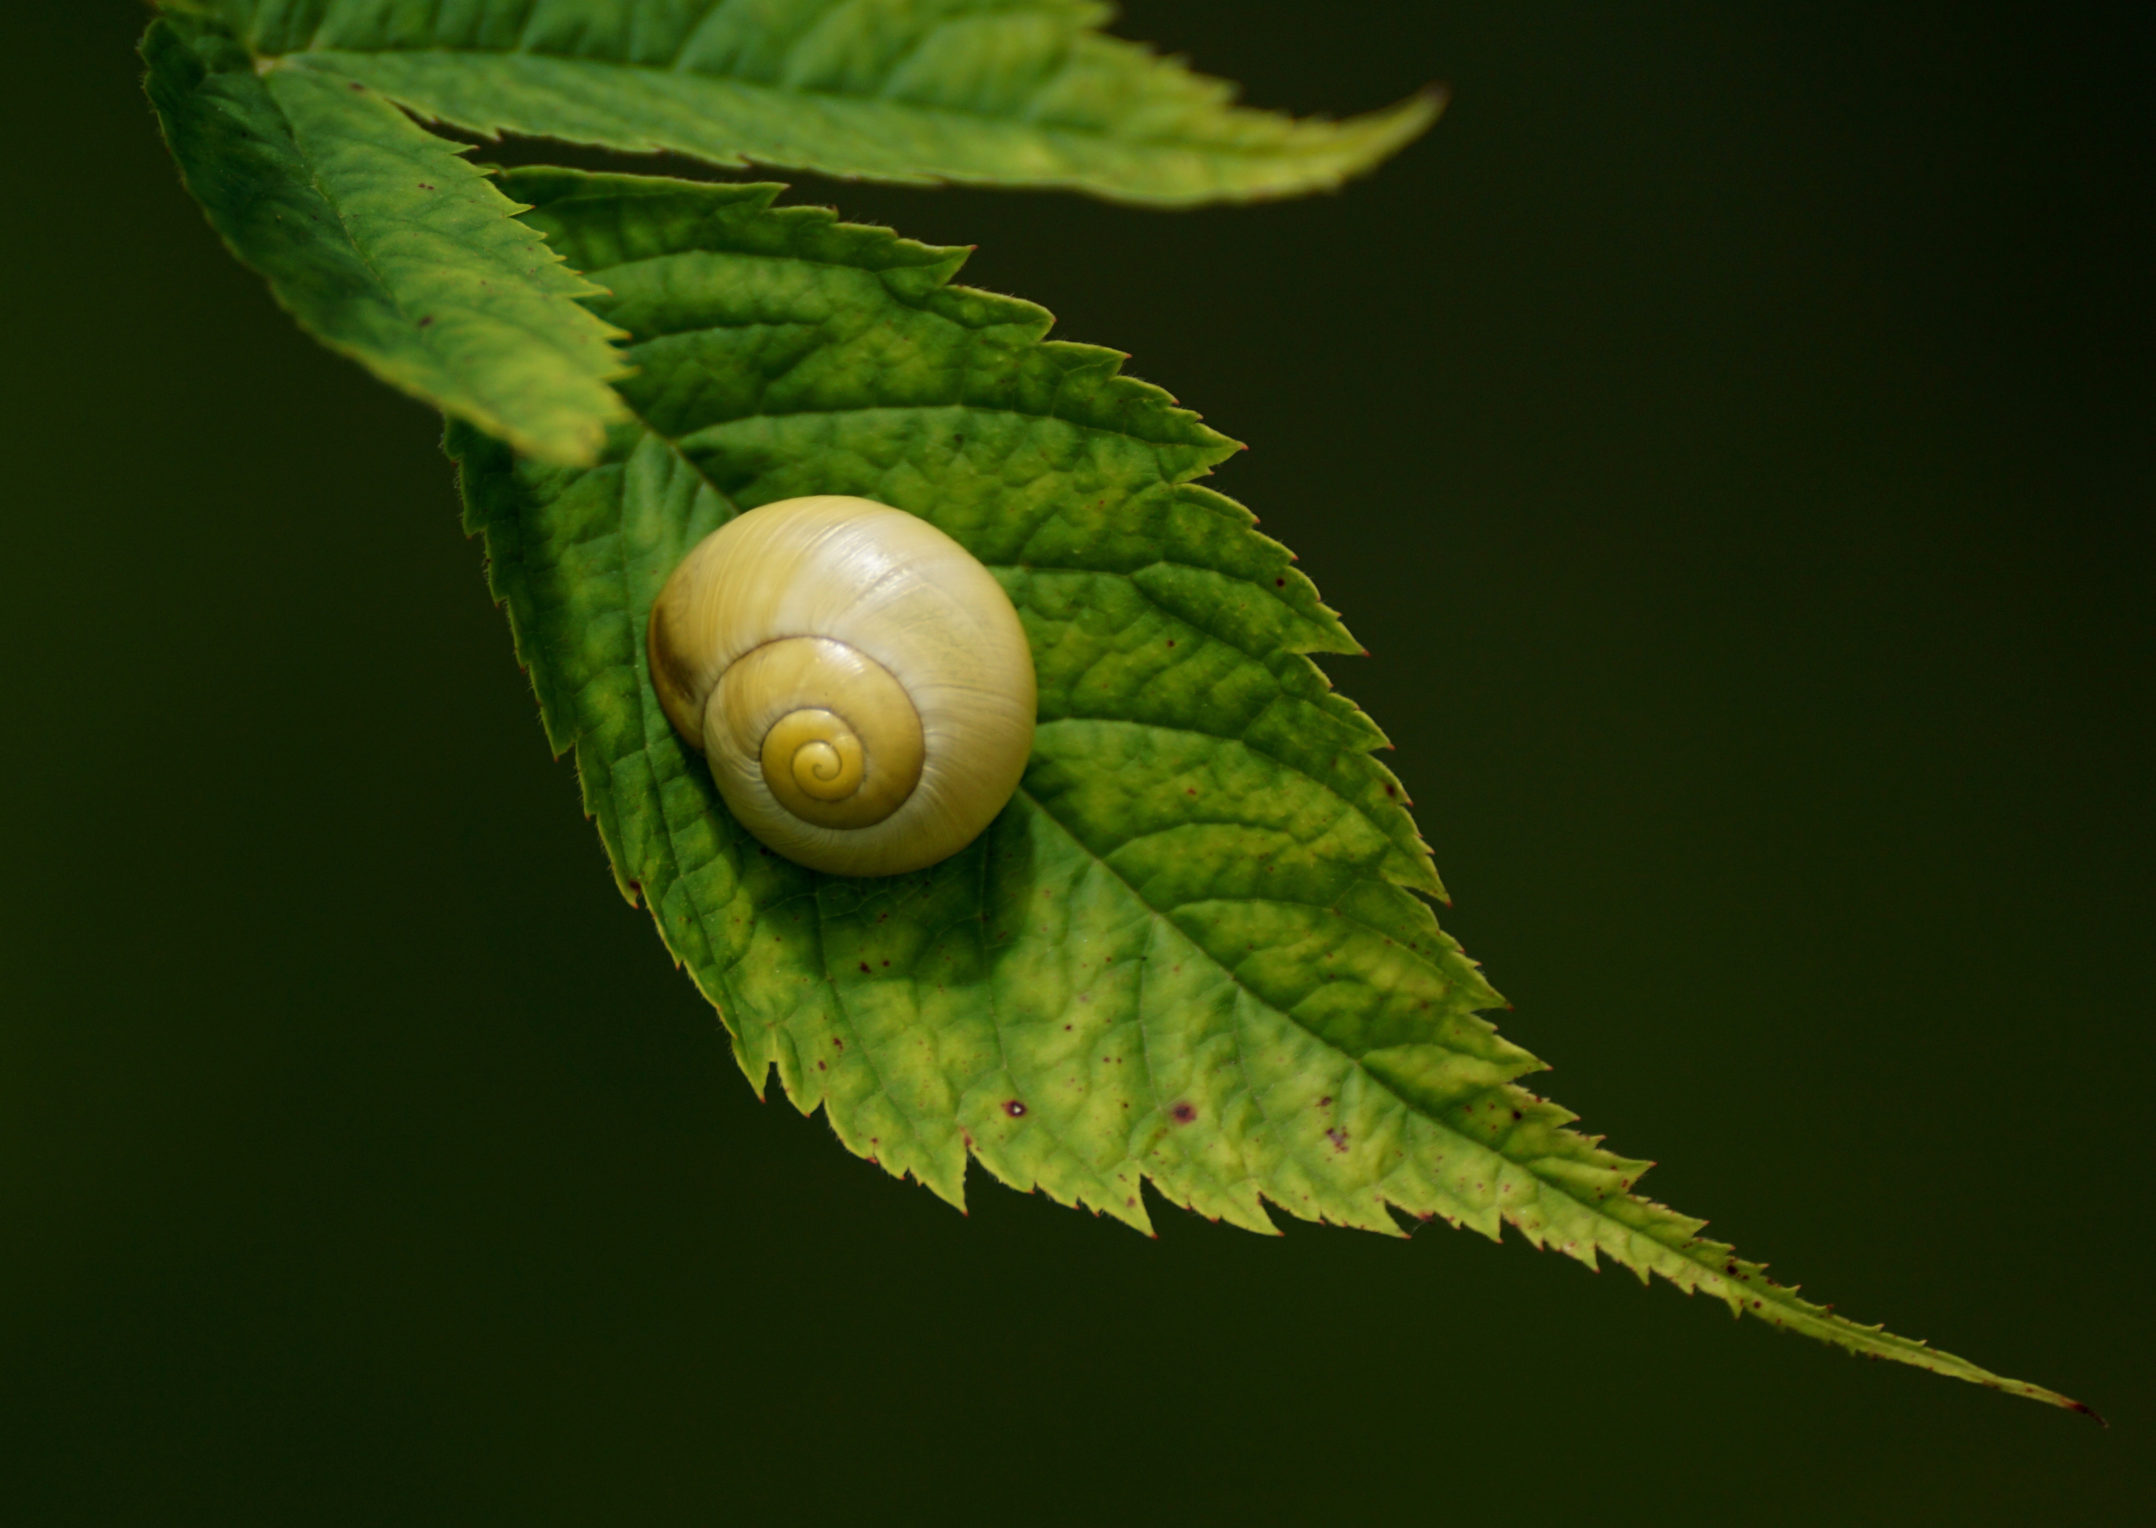 All about land snails | Welcome Wildlife